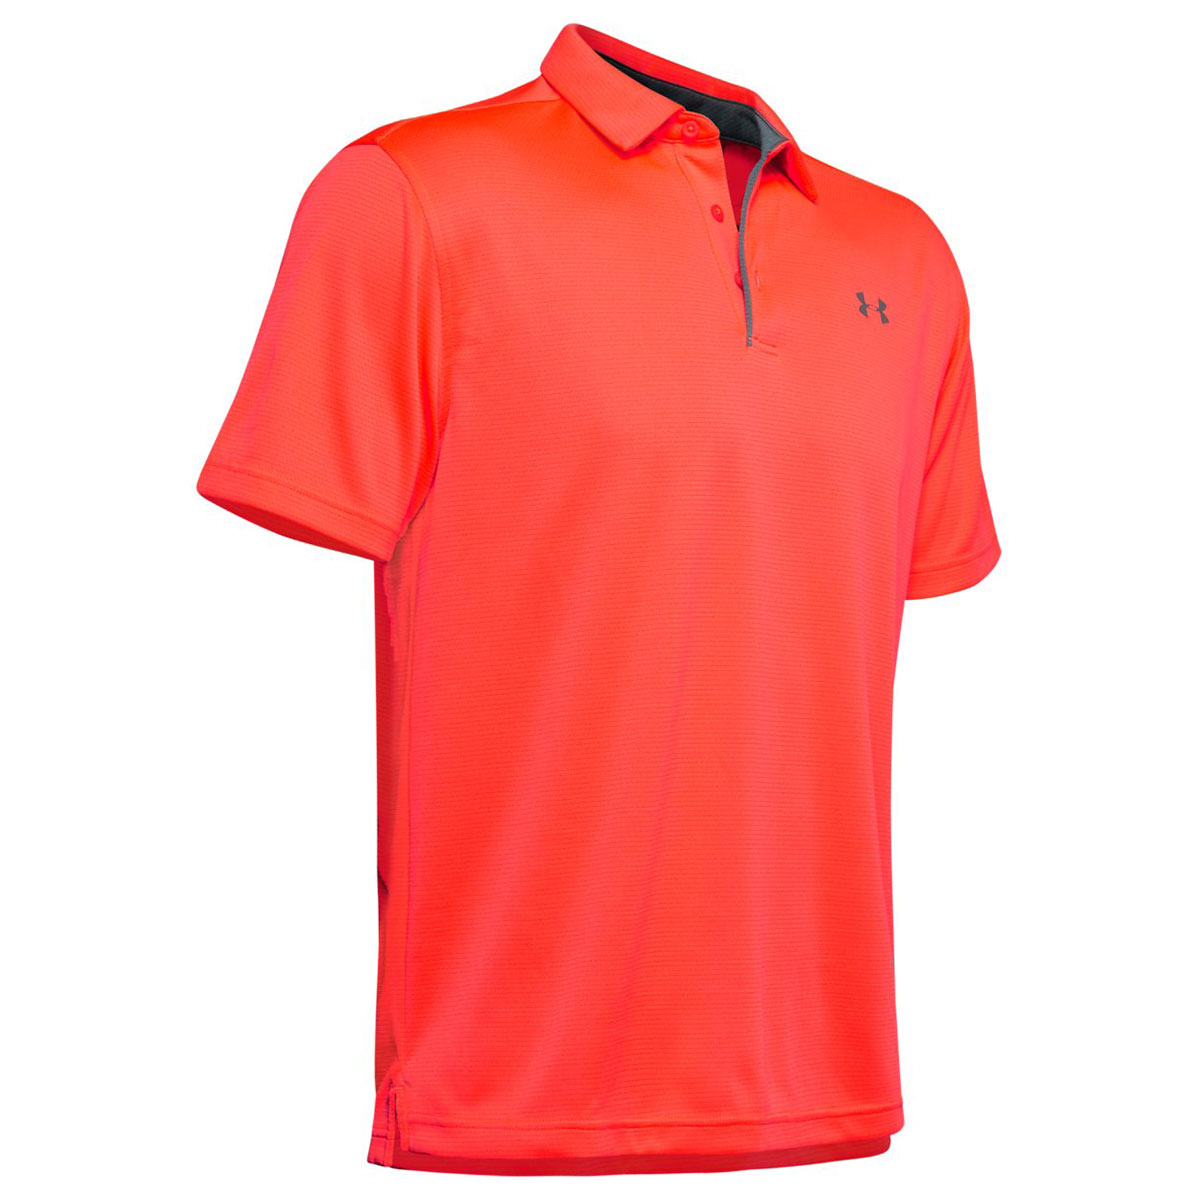 Under-Armour-Mens-2019-Golf-Tech-Wicking-Textured-Soft-Light-Polo-Shirt thumbnail 16